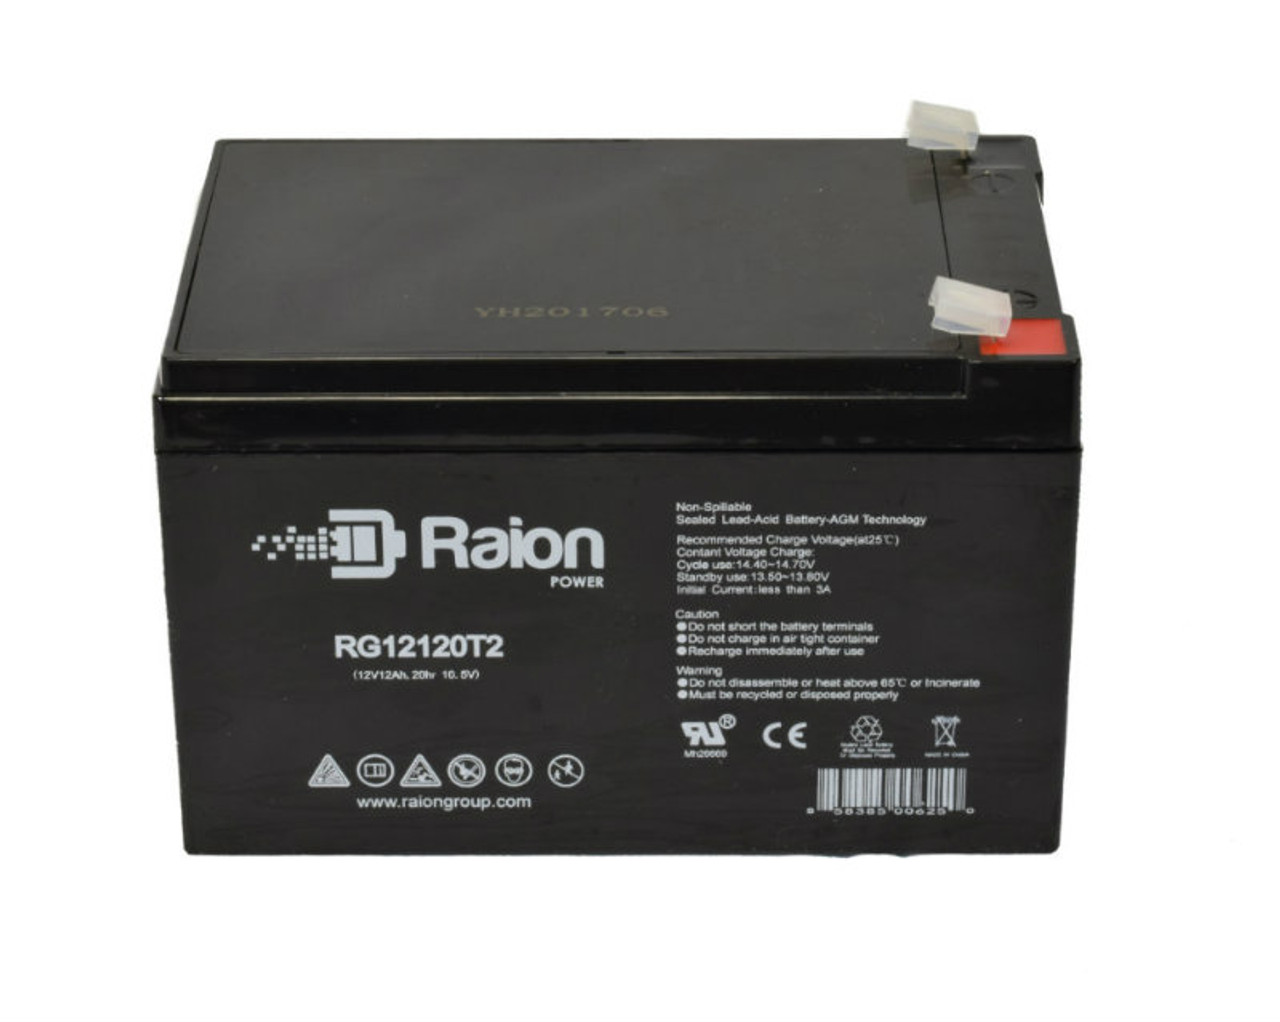 Raion Power RG12120T2 SLA Battery for ActiveCare Medical Spitfire 1410 Wheelchairs